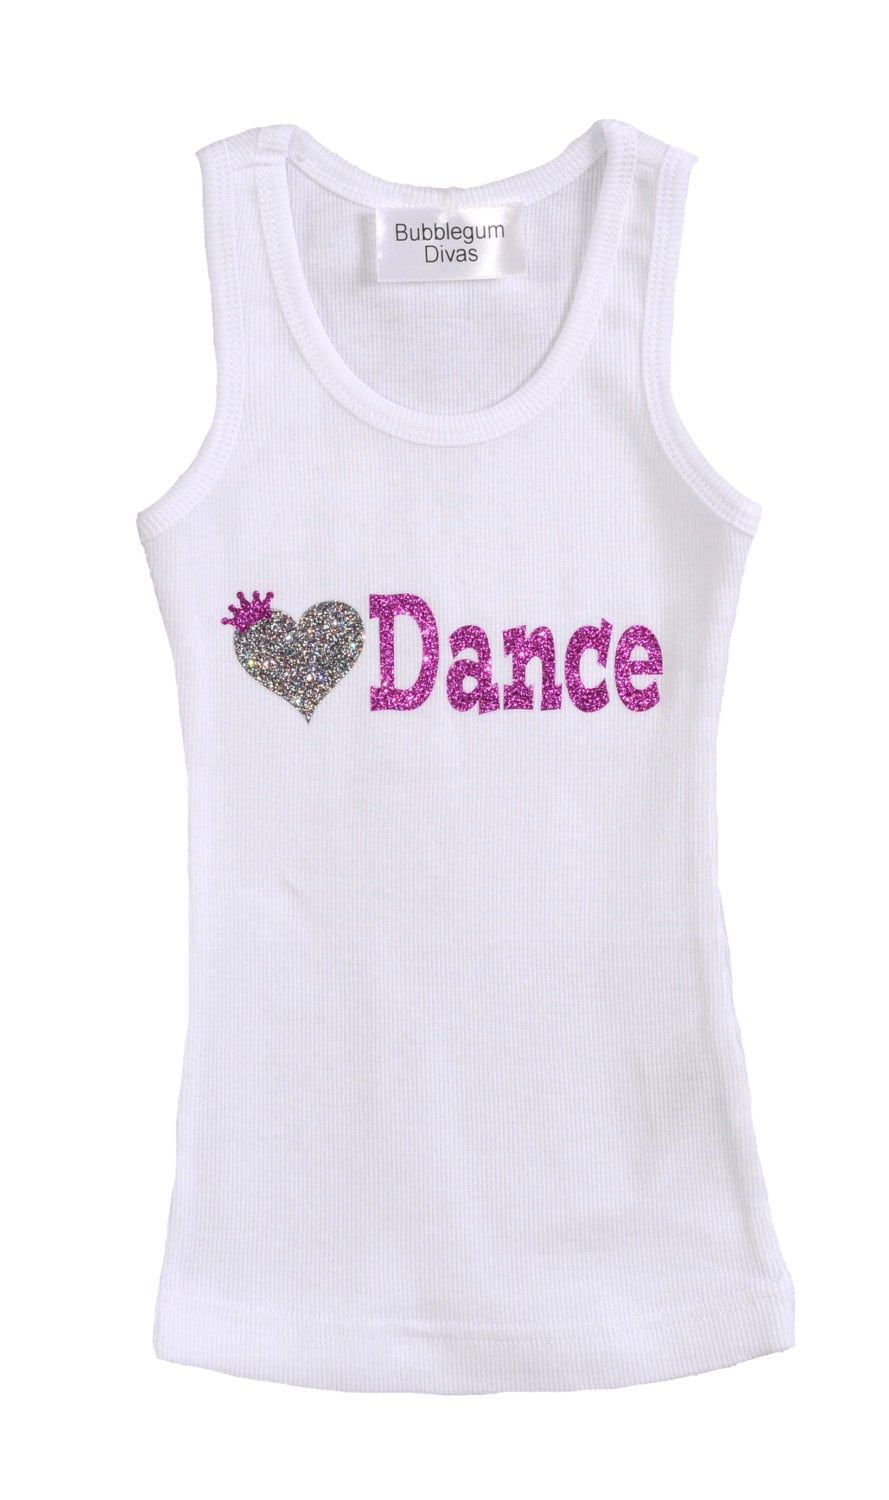 Dance, Get your little dancer into this gorgeous two piece outfit. The cotton blend long sleeved top is white with a sweet tutu hem and a large placement ballet shoes print. A sweet look with ballet flats, the leggings are dark pink and made of stretch venchik.mlirls (Size 3 - 7).